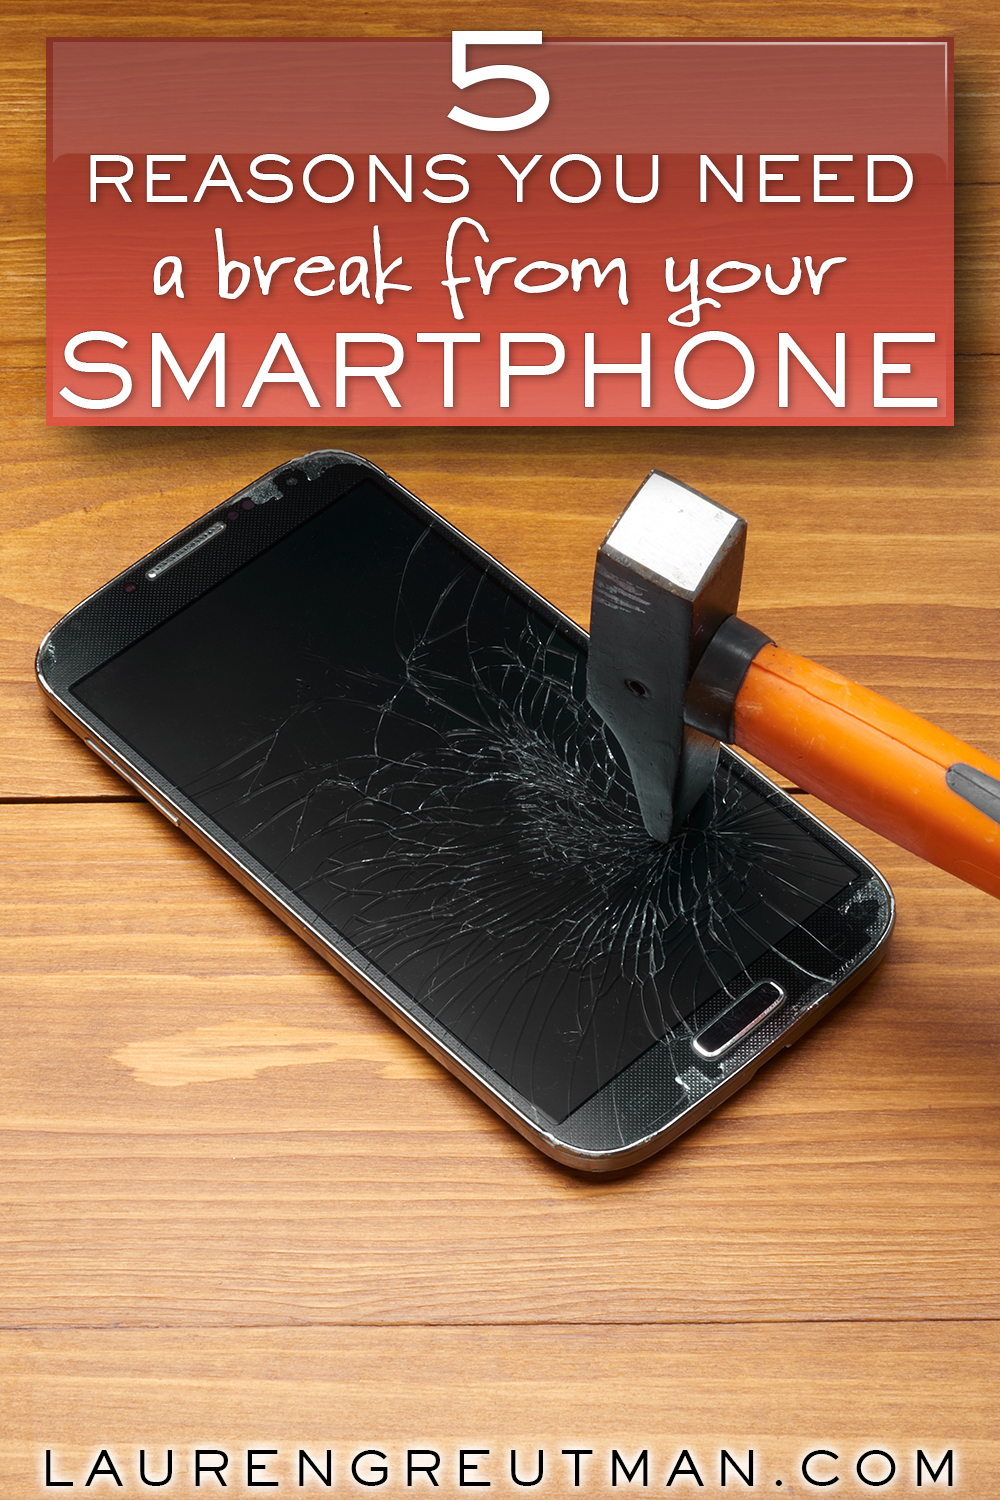 5 reasons you NEED A BREAK from your smartphone.